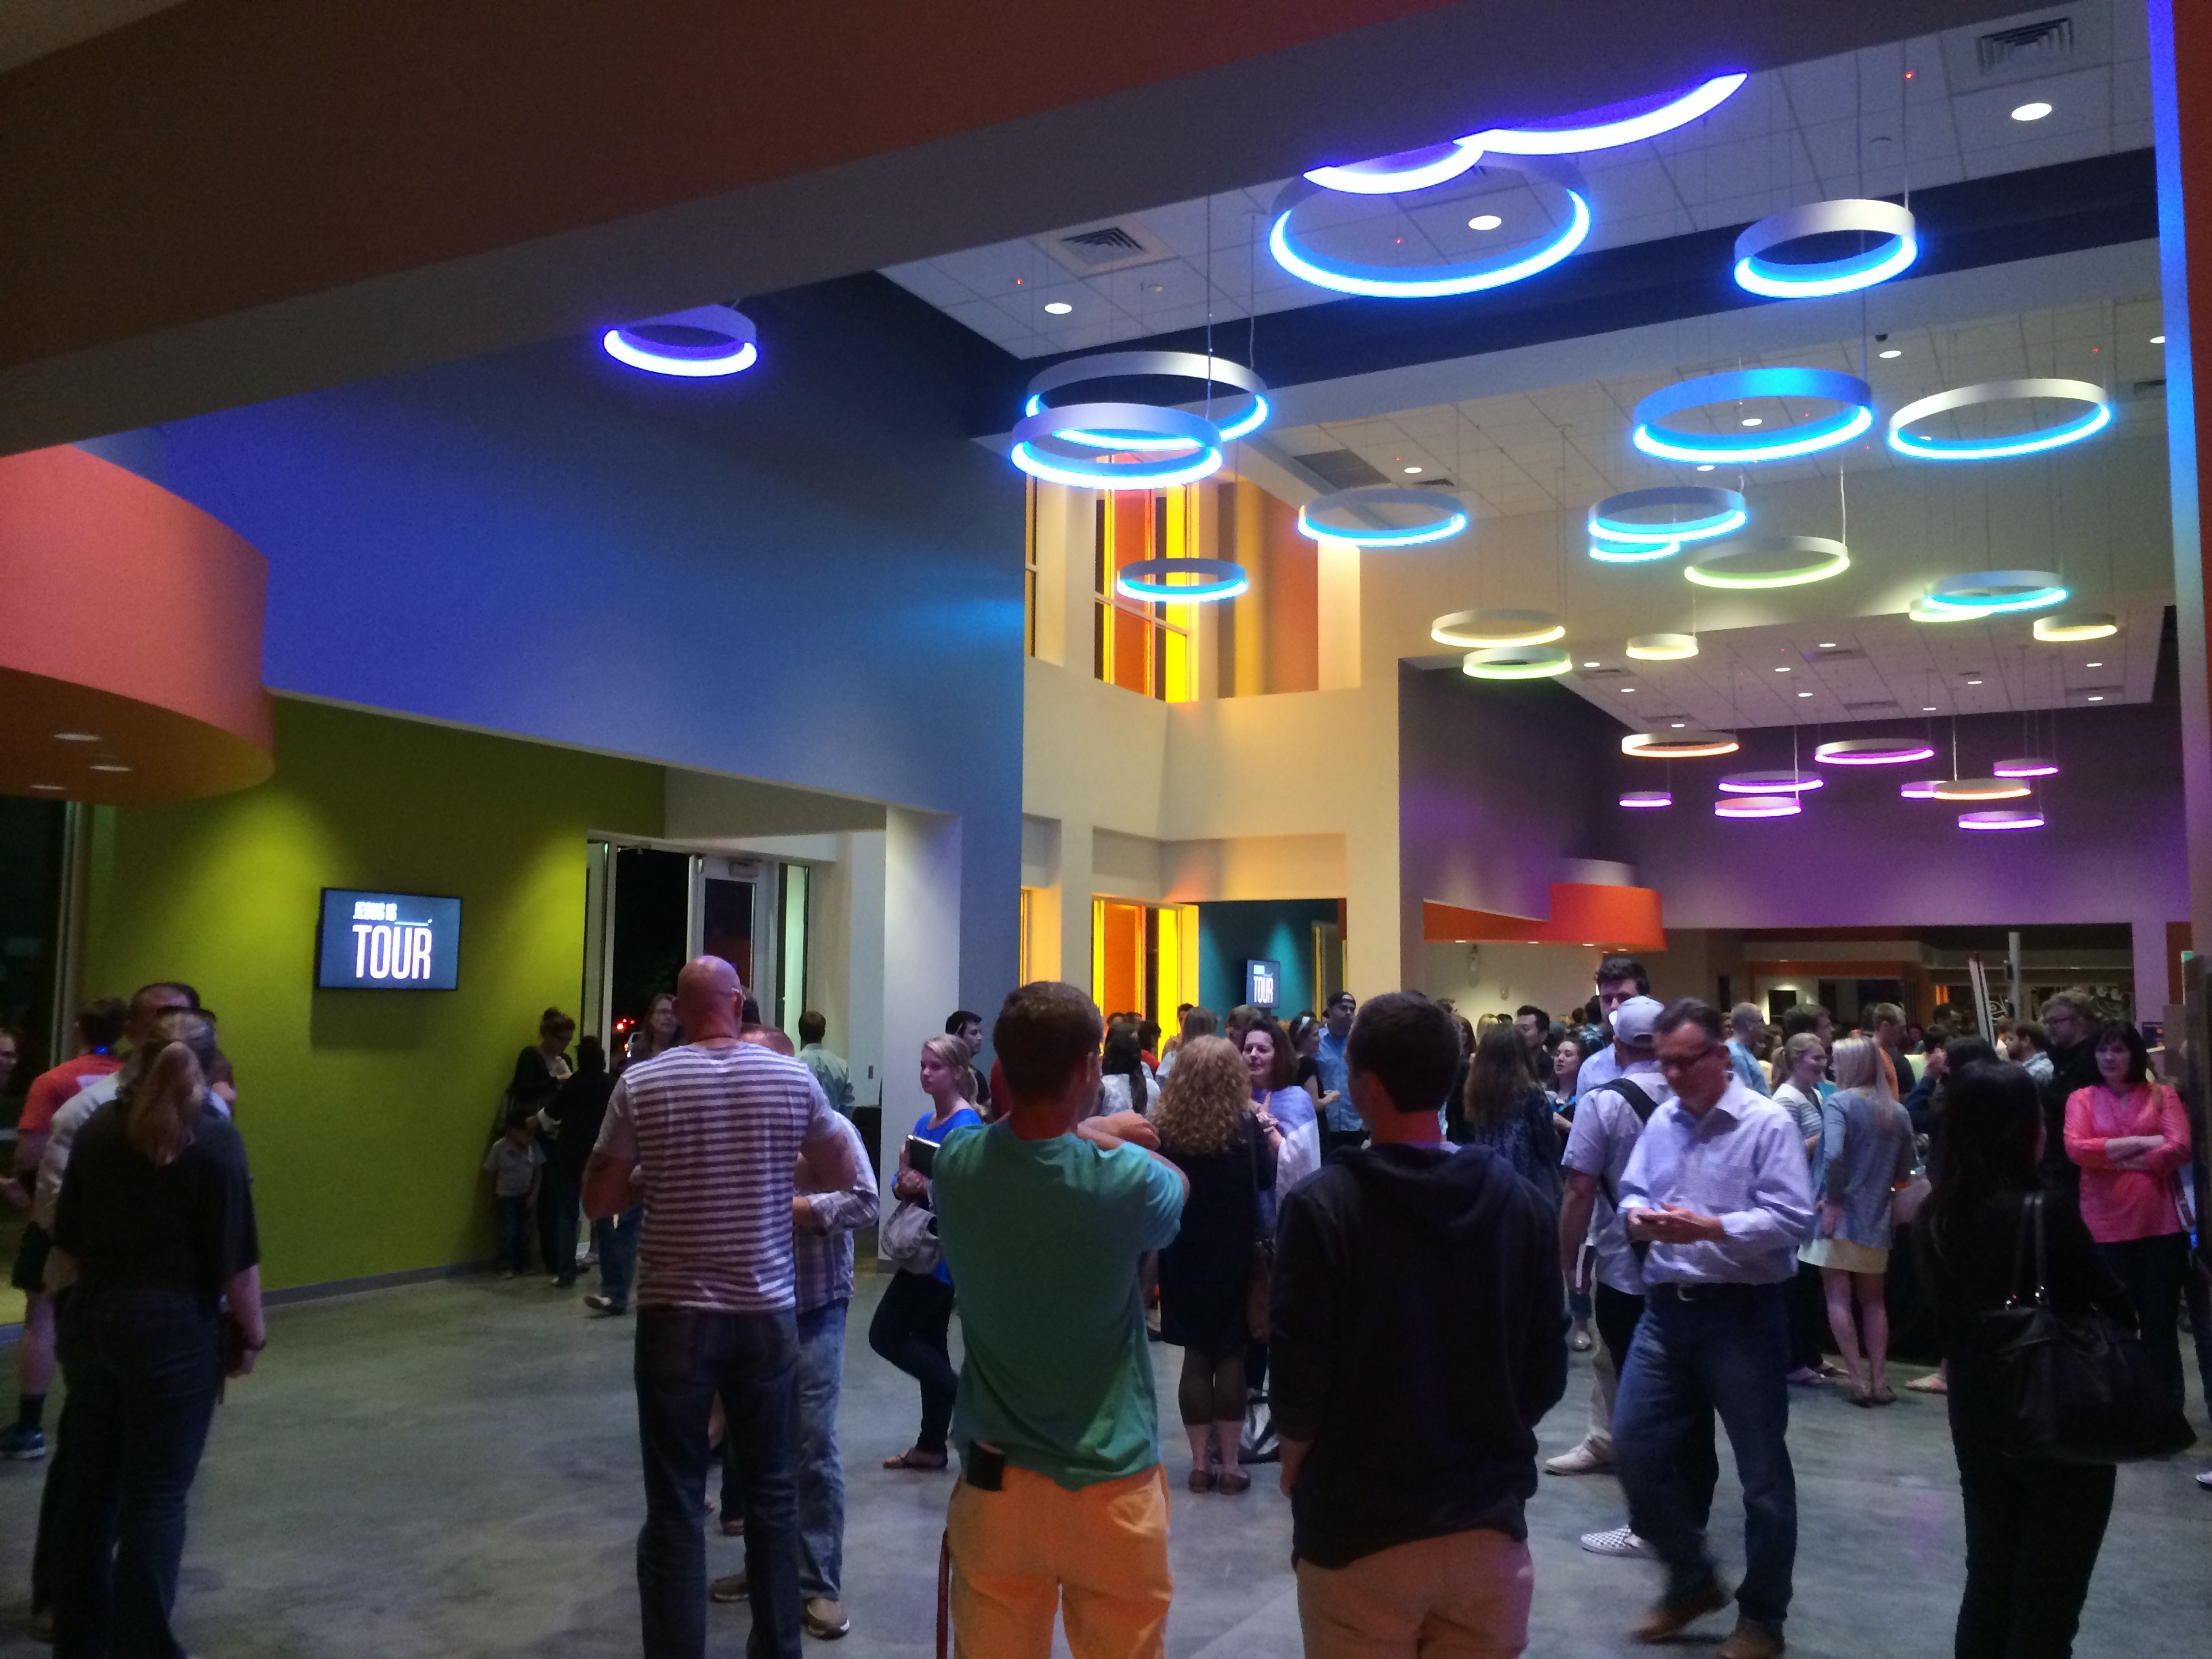 Elevation Church Lobby